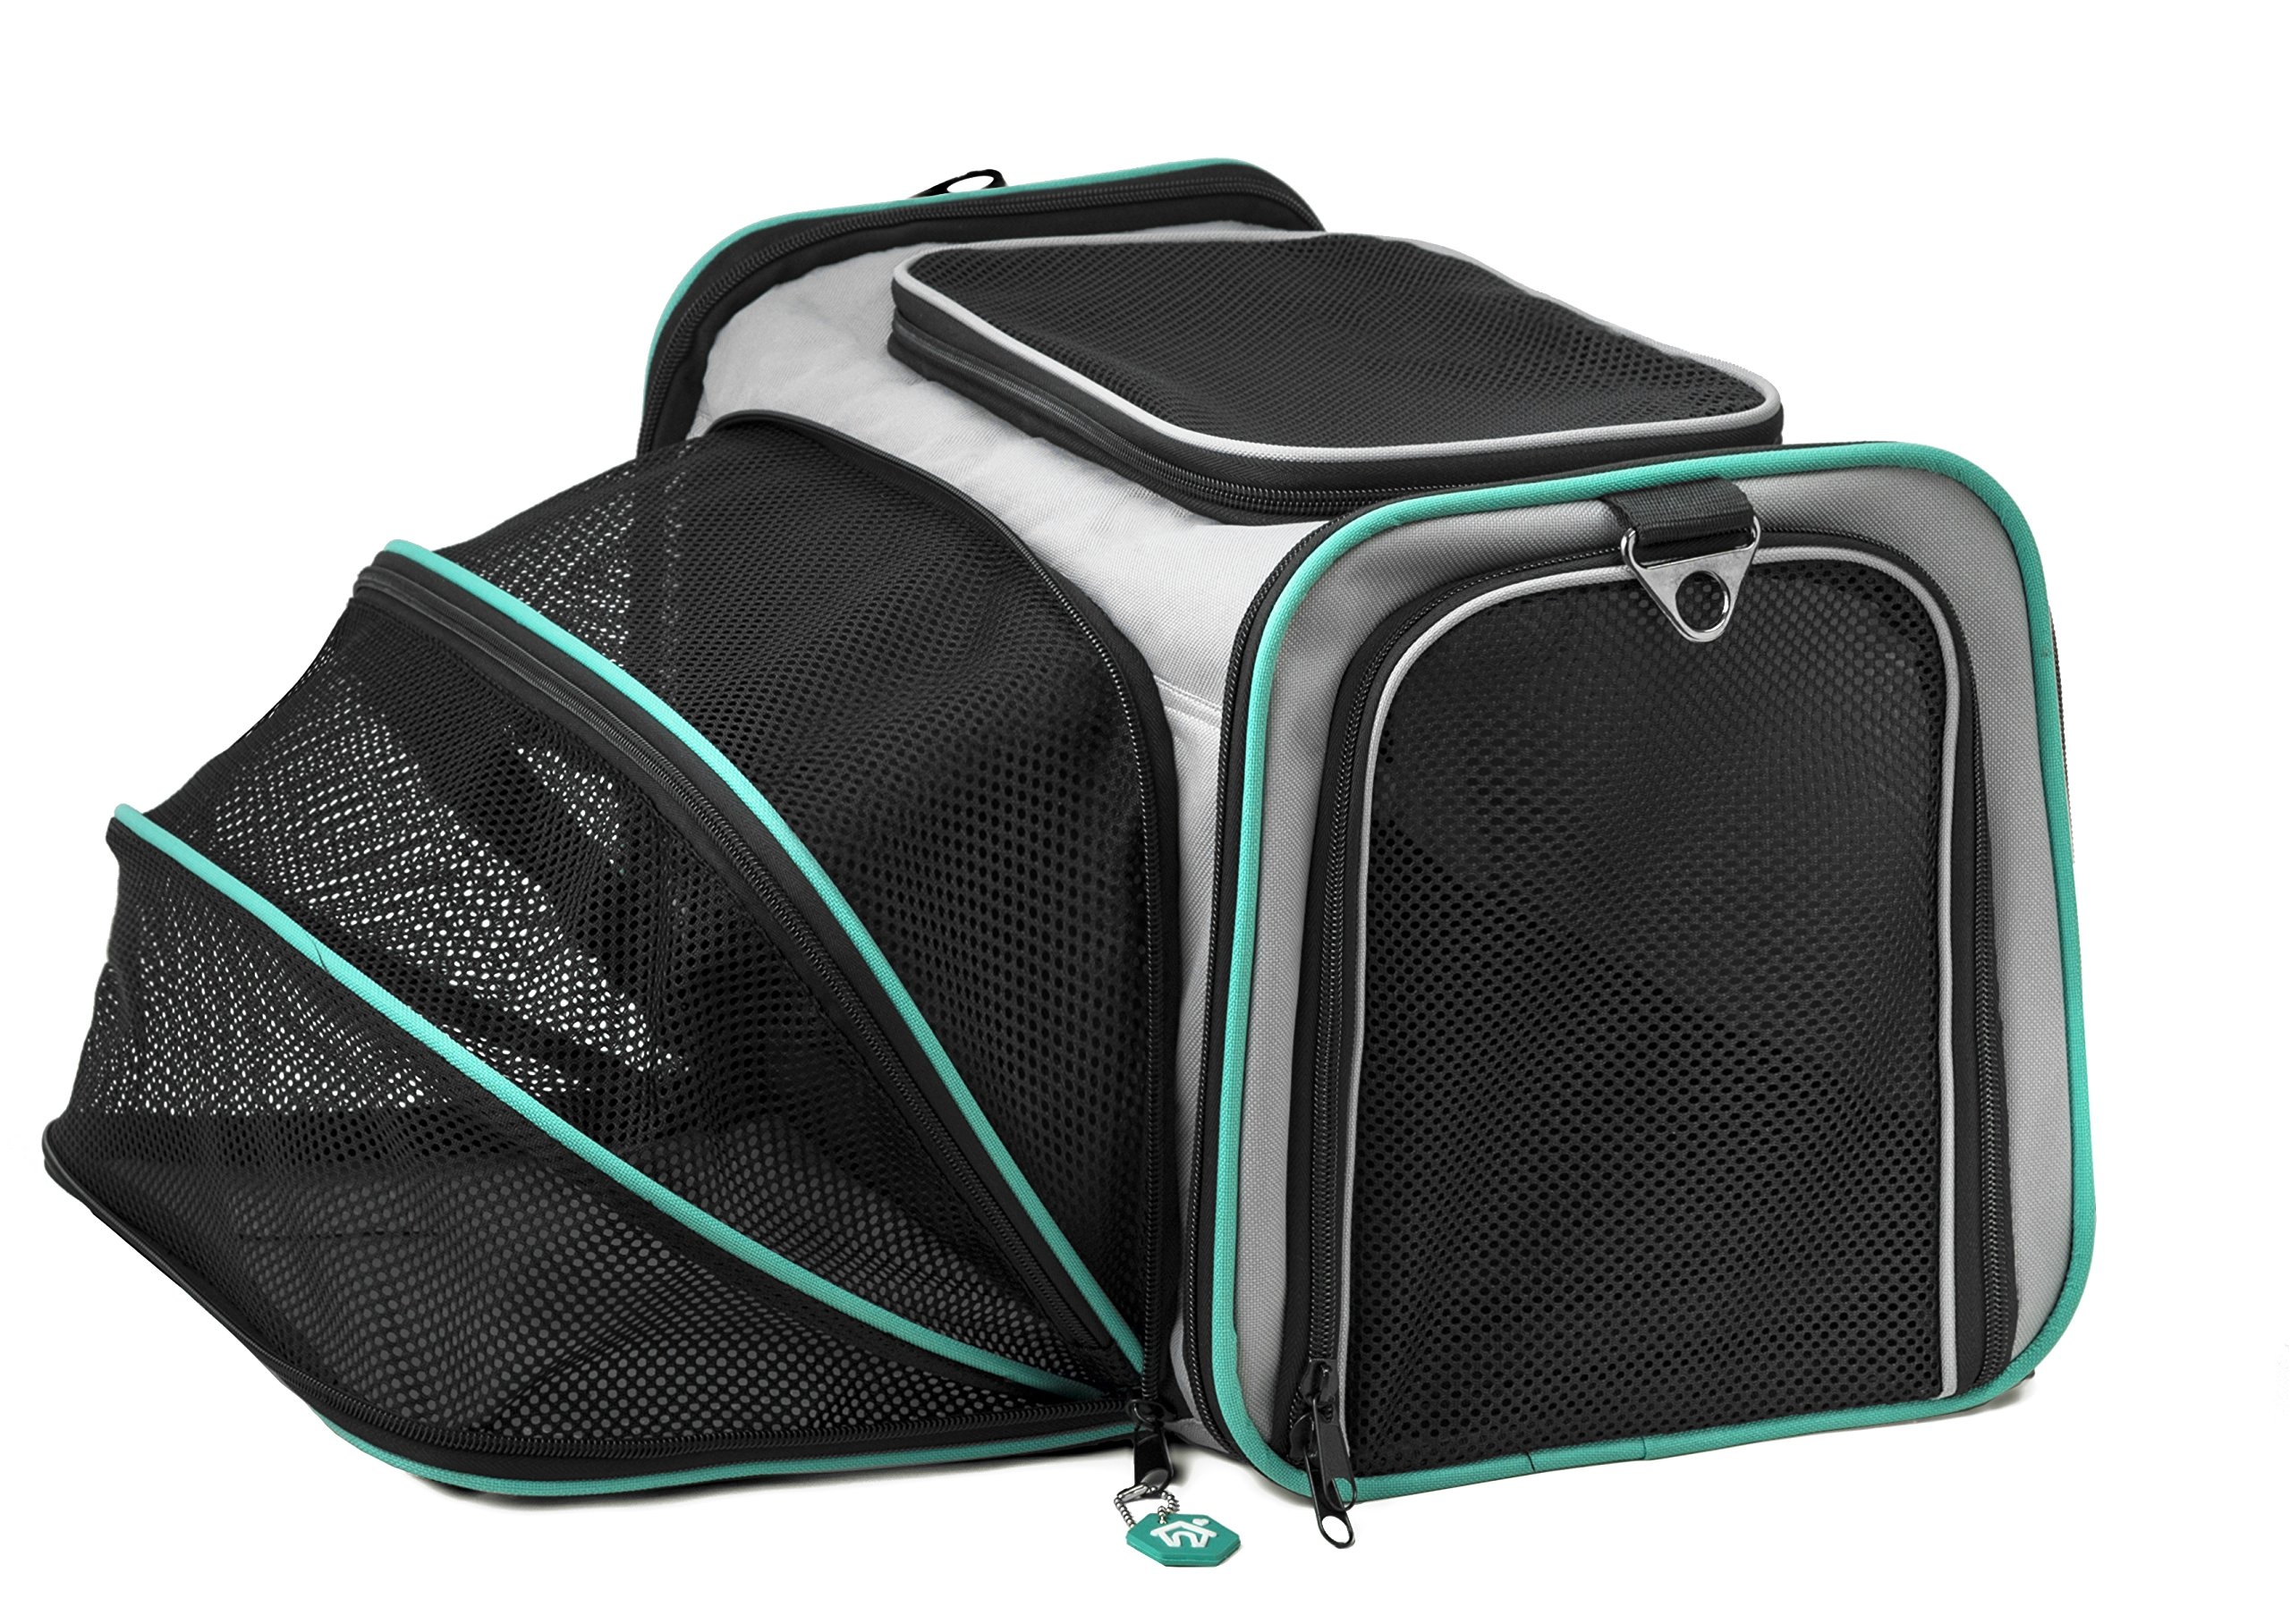 Pawdle Expandable and Foldable Pet Carrier Domestic Airline Approved (Heather Gray) by Pawdle (Image #2)